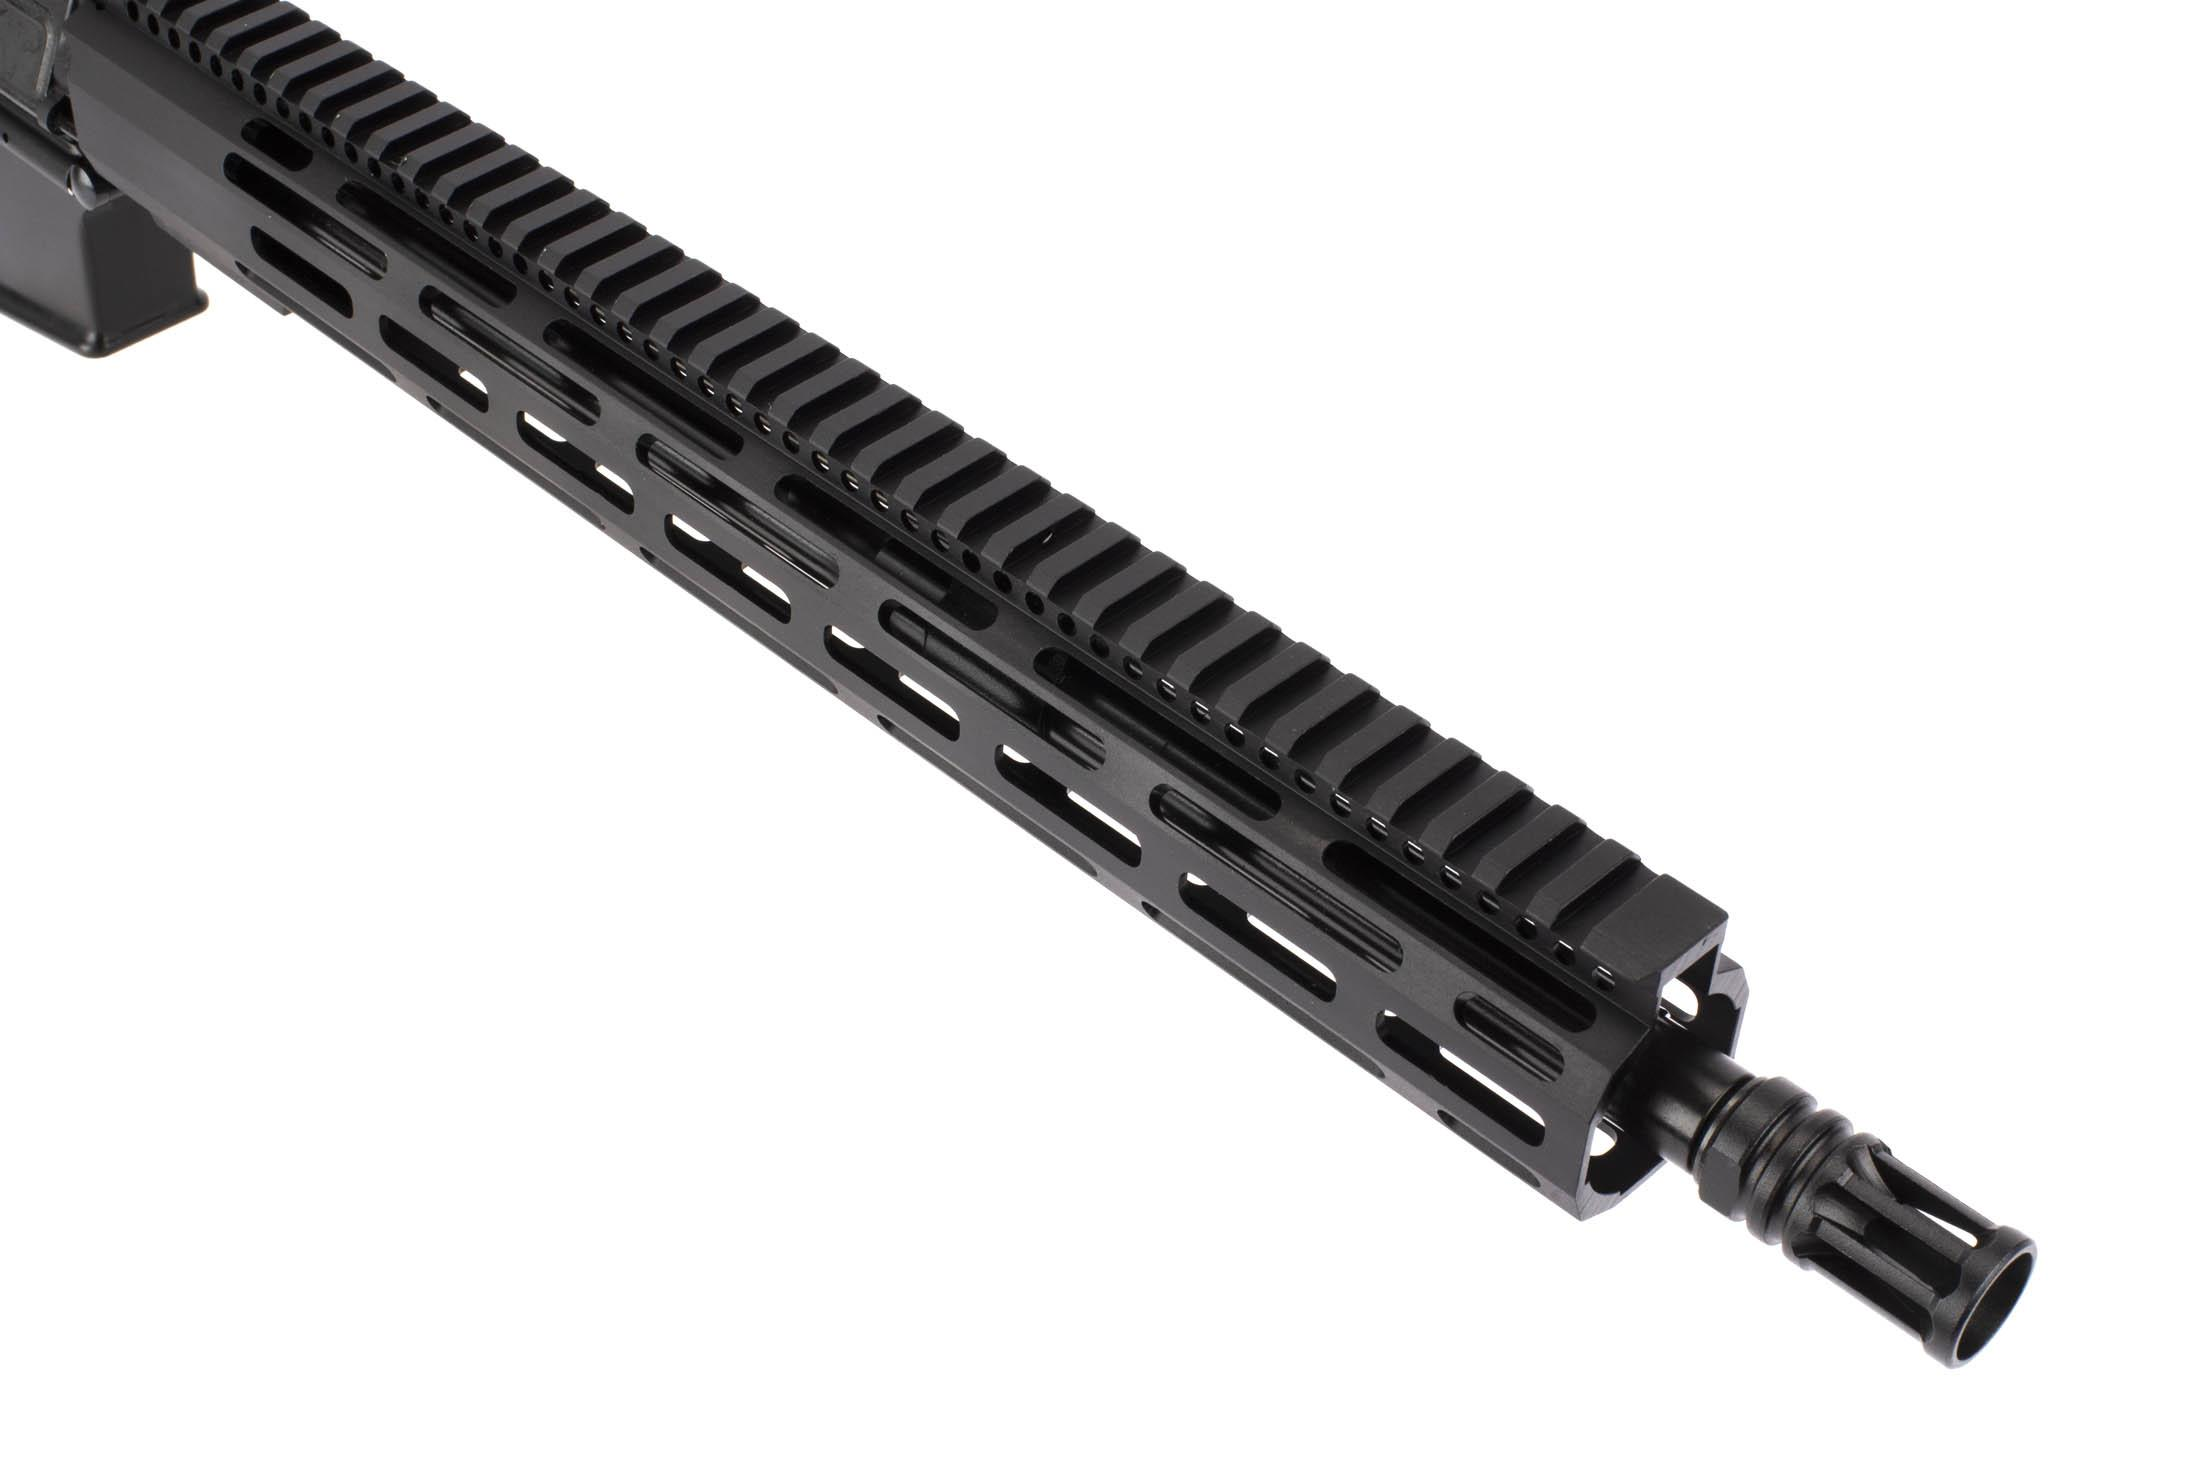 Radical Firearms AR15 with 16in 5.56 NATO SOCOM contour barrel is threaded 1/2x28 with an A2 flash hider.